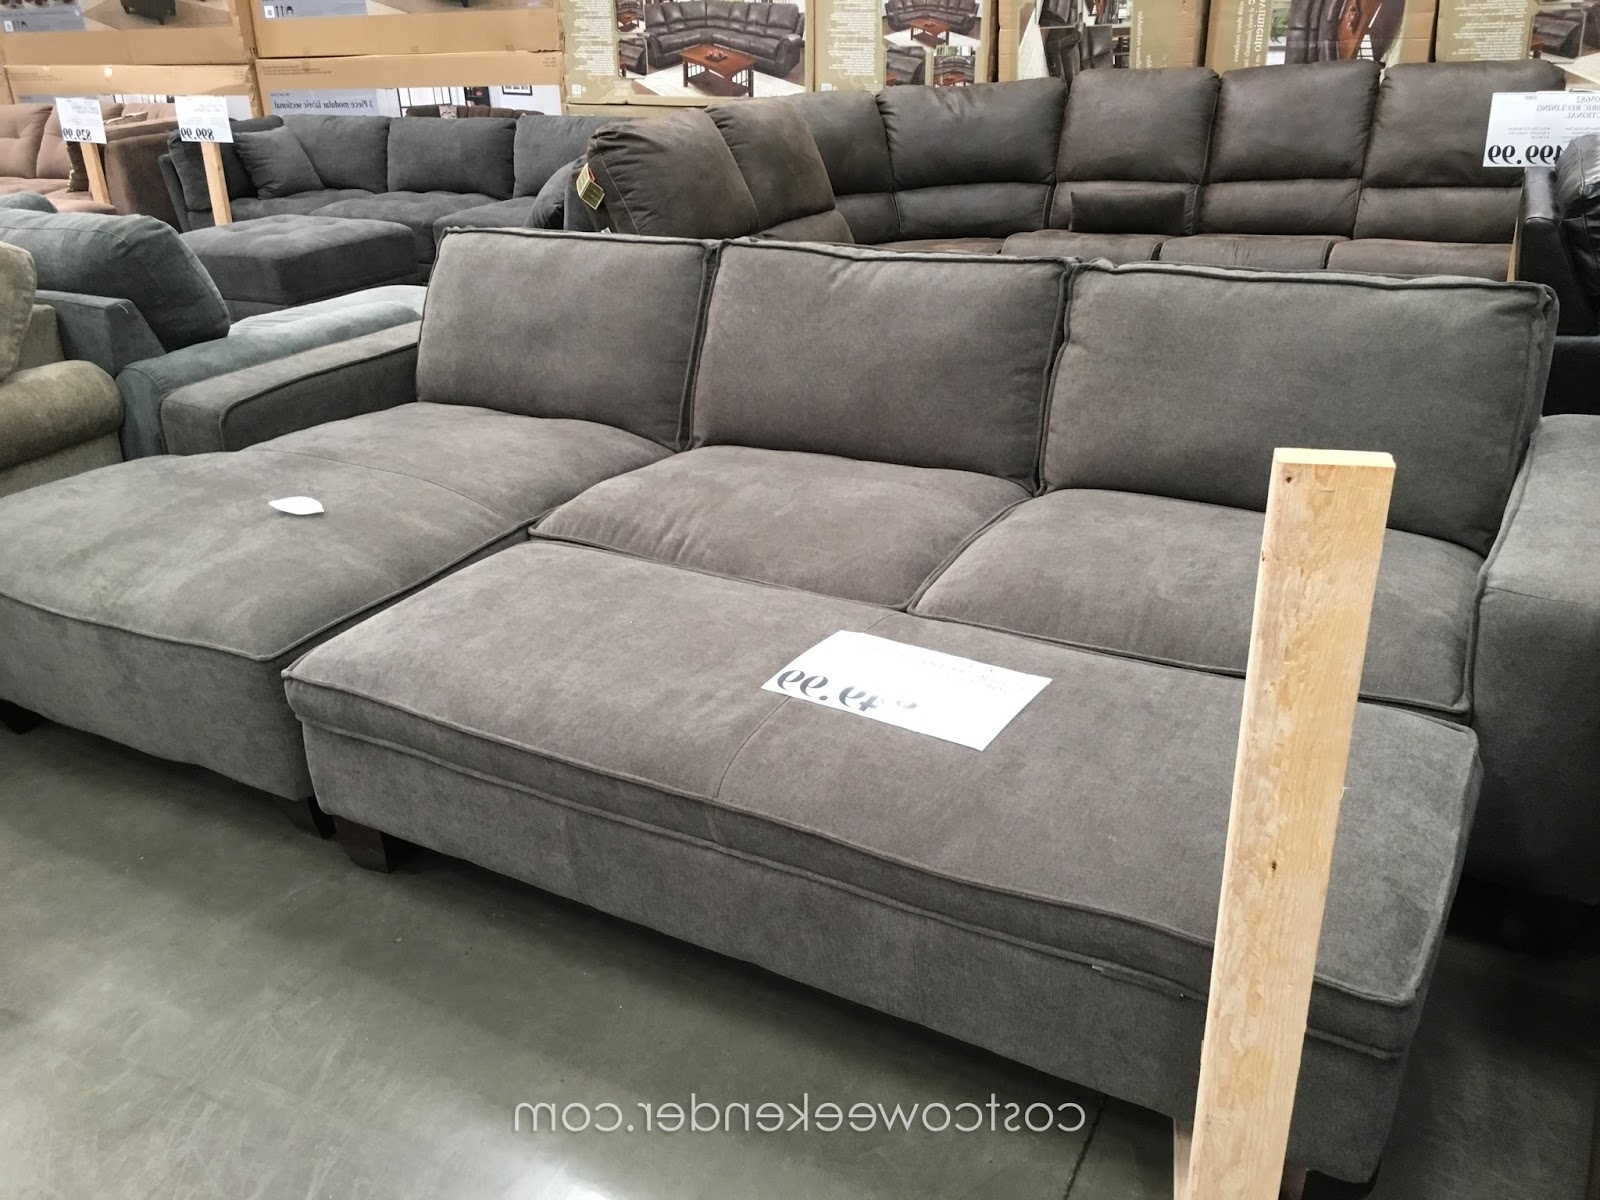 Most Recent Sectionals With Chaise And Ottoman Intended For Sectional Sofa Design: Costco Sectional Sofas Best Ever Leather (View 4 of 20)